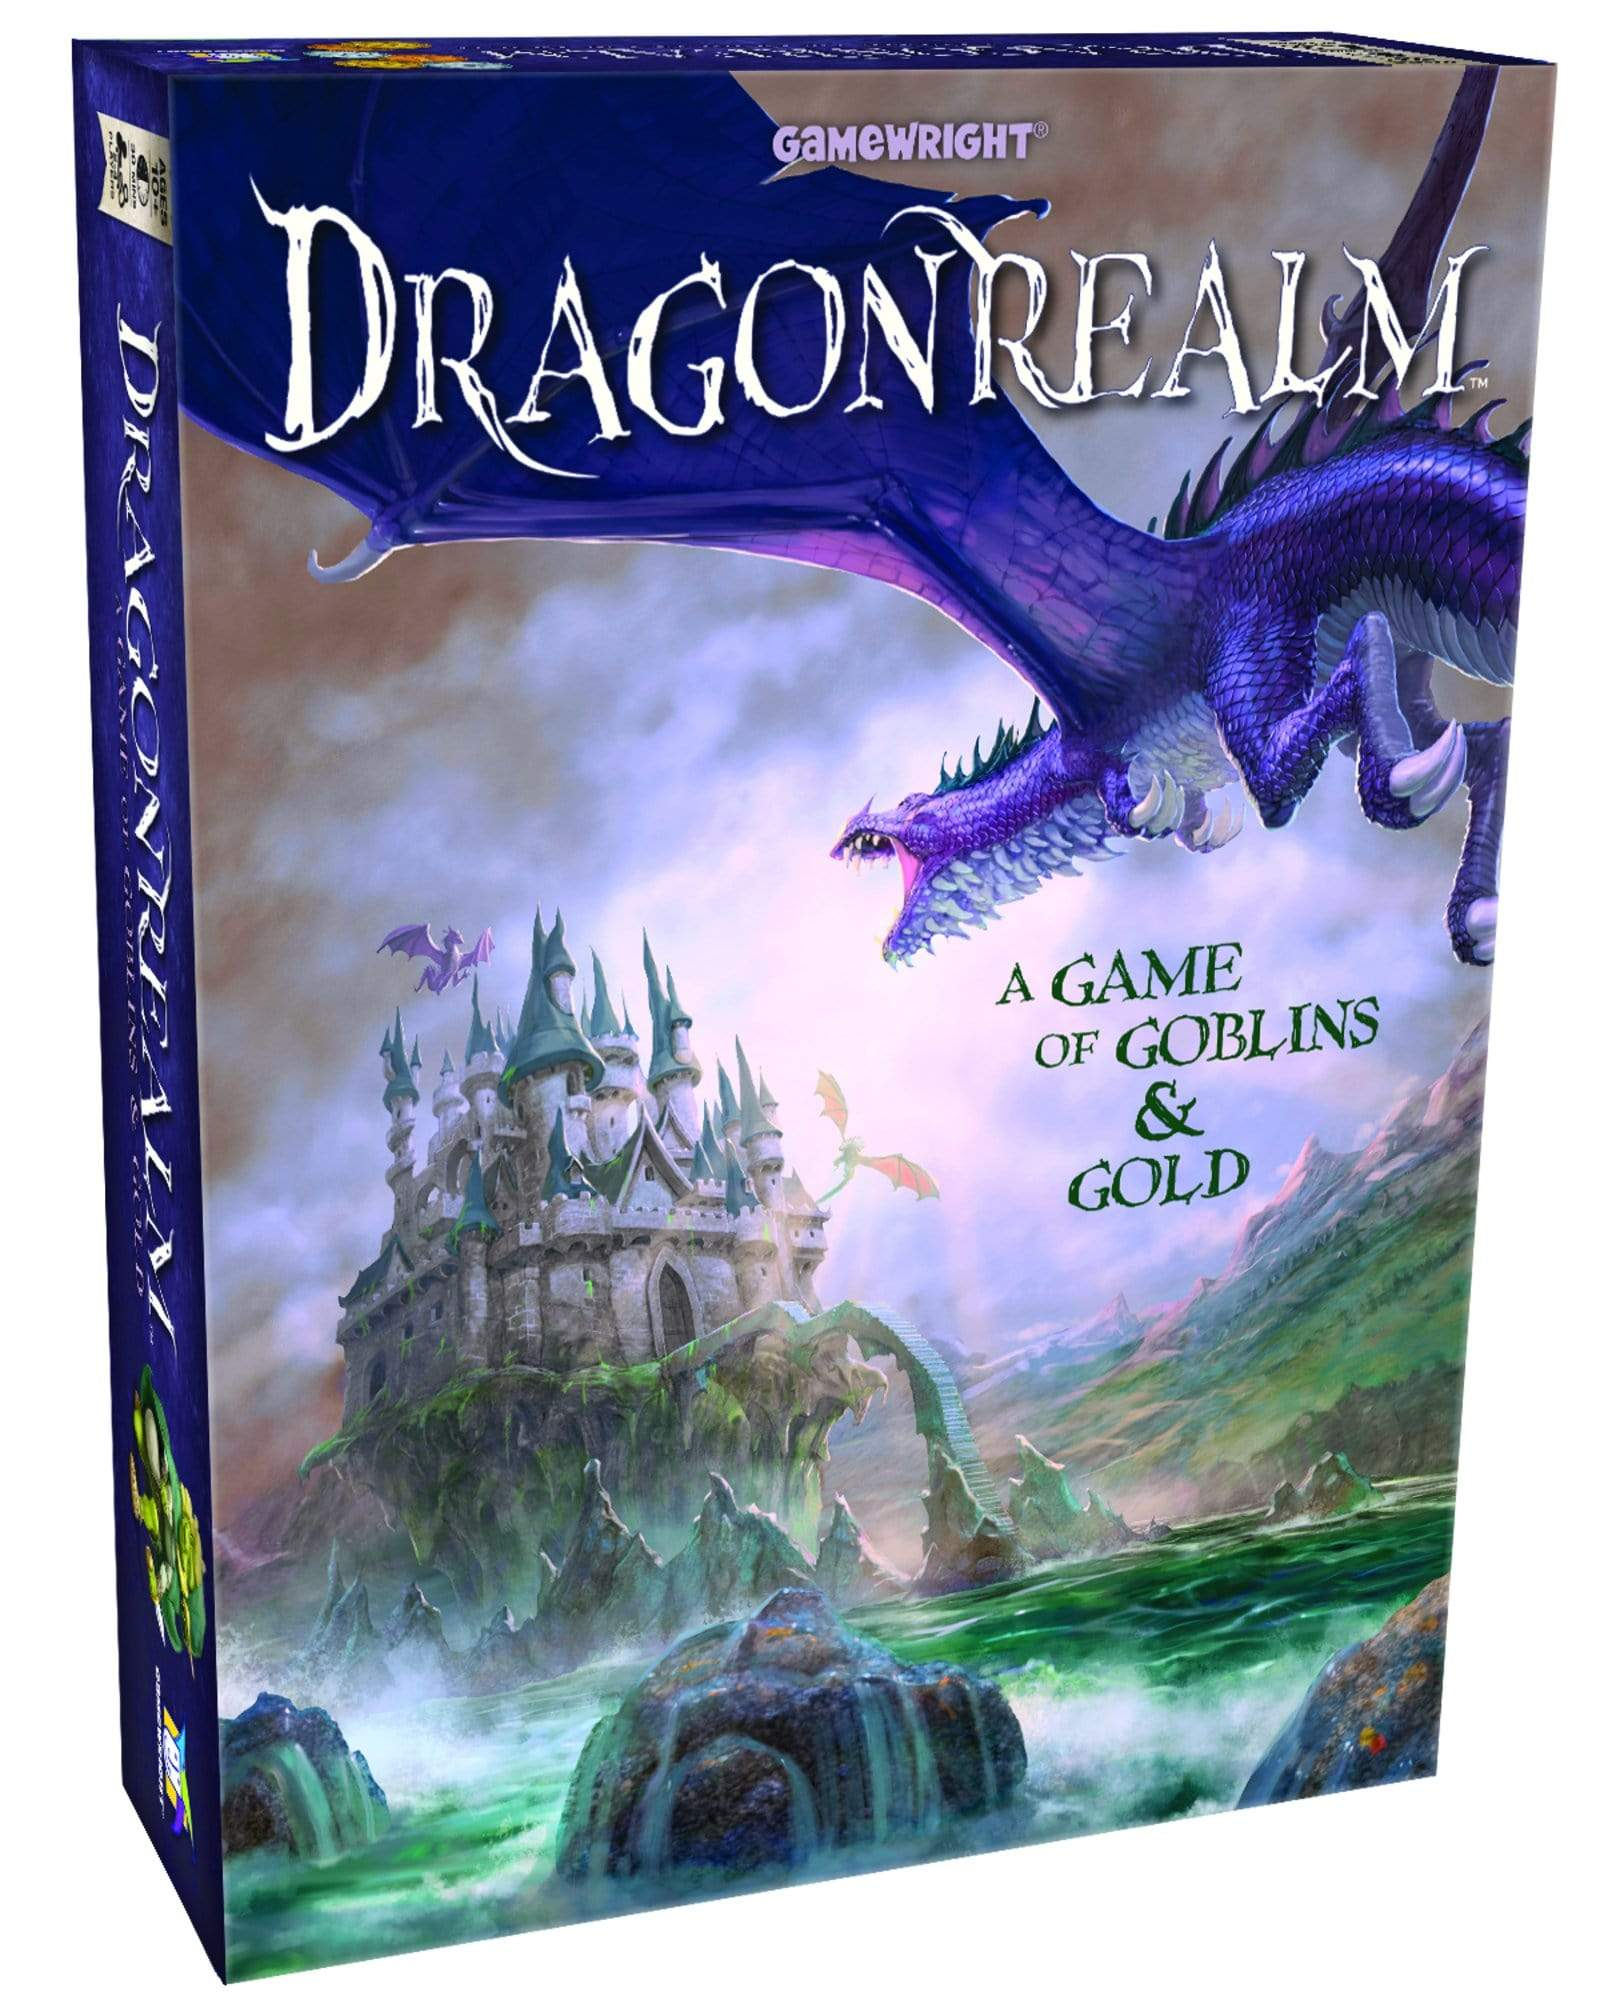 Dragonrealm Gamewright Board Games